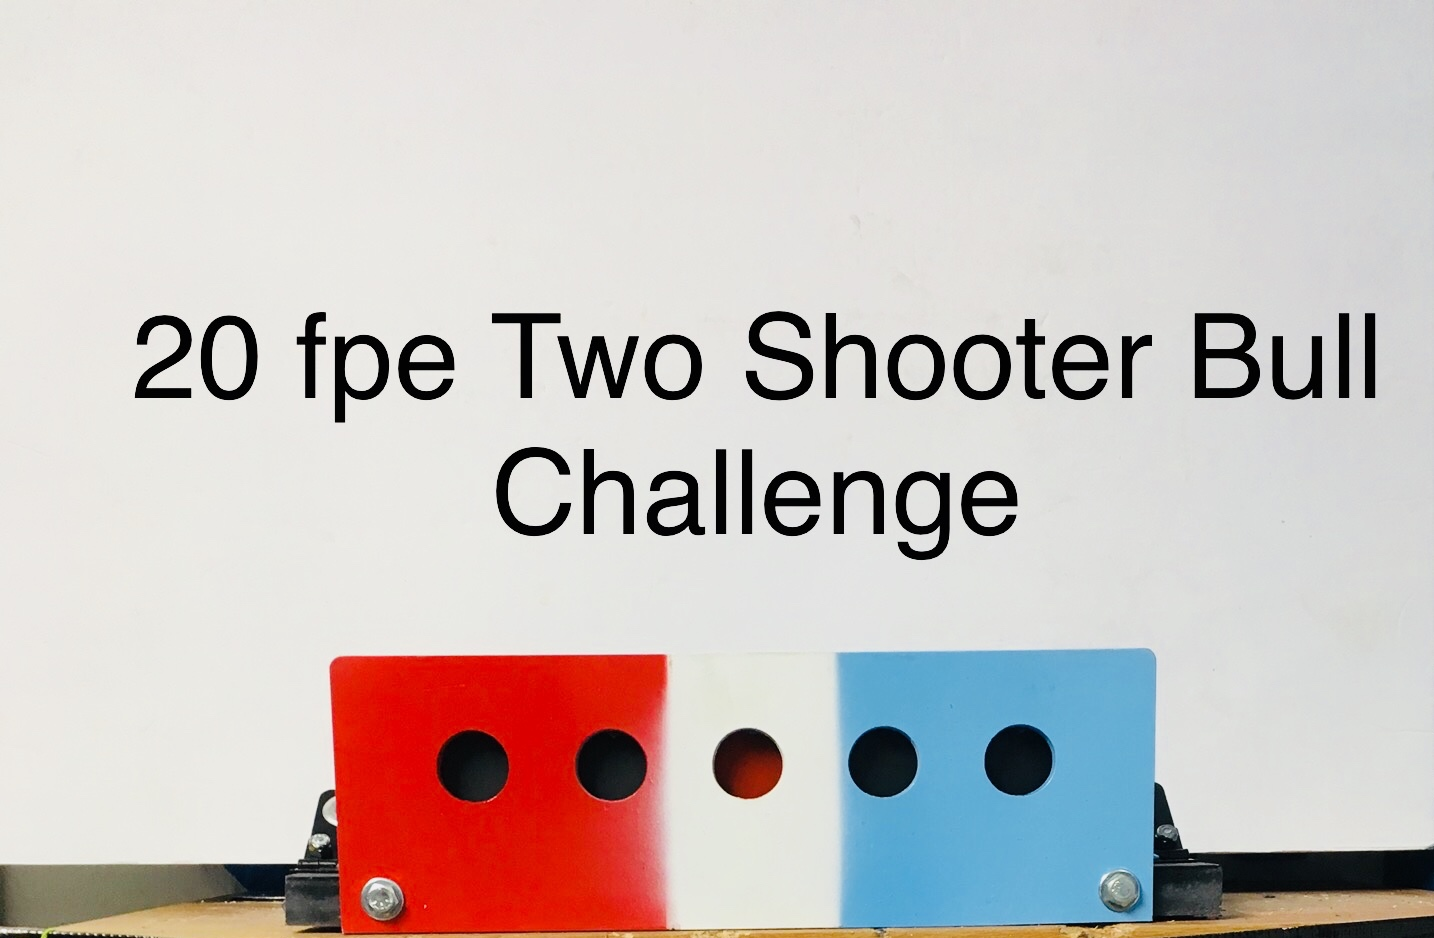 Rx Two Shooter Challenge, with center target as winning target.